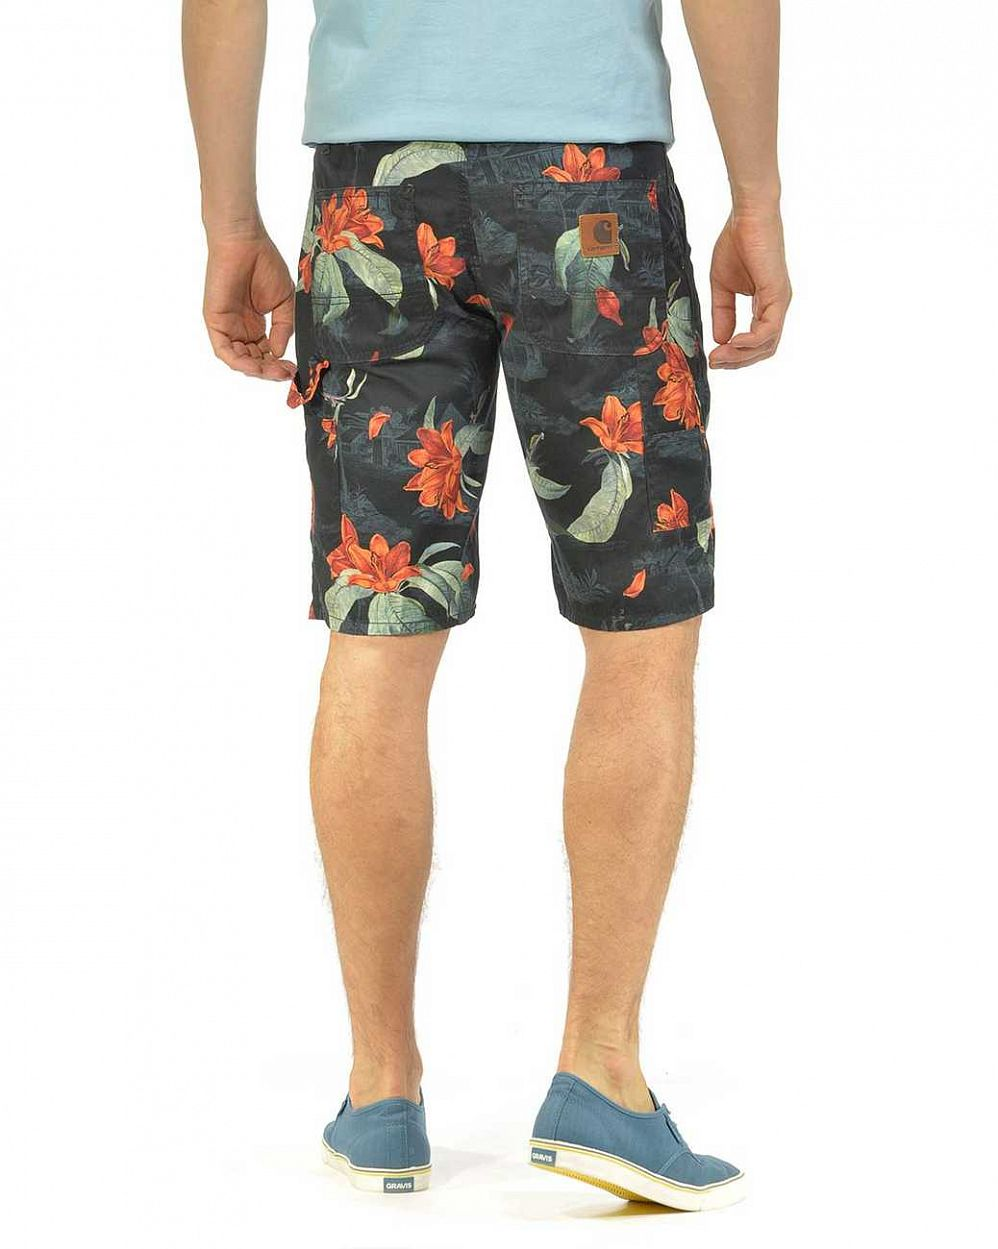 Шорты бермуды Carhartt WIP Lincoln Knee Milford Twill 5 Oz Tropic Print цена в Москве